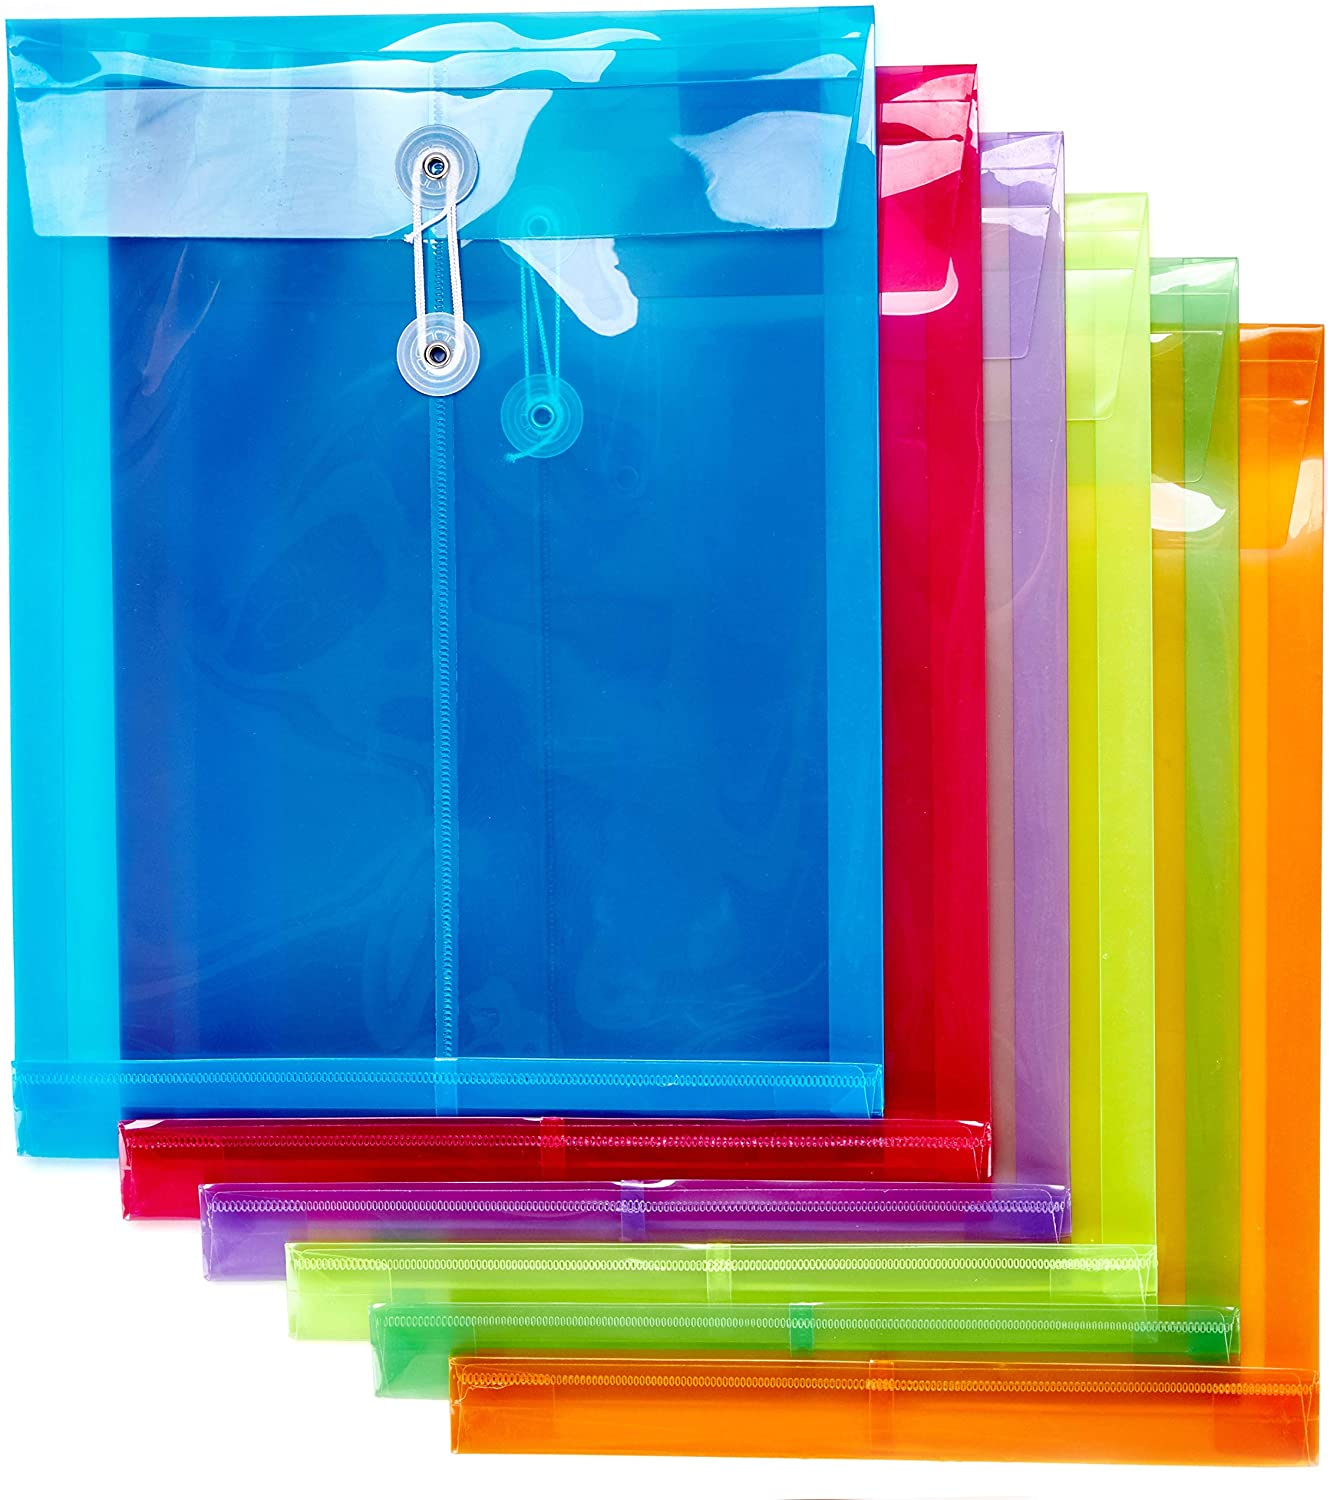 FANWU 6 Pack Plastic Envelopes Poly Envelopes Expandable Files Document Folders with Button & String Tie Closure - Letter A4 Size - 1-1/4 Inch Expansion - for School Office and Home (Assorted Color))